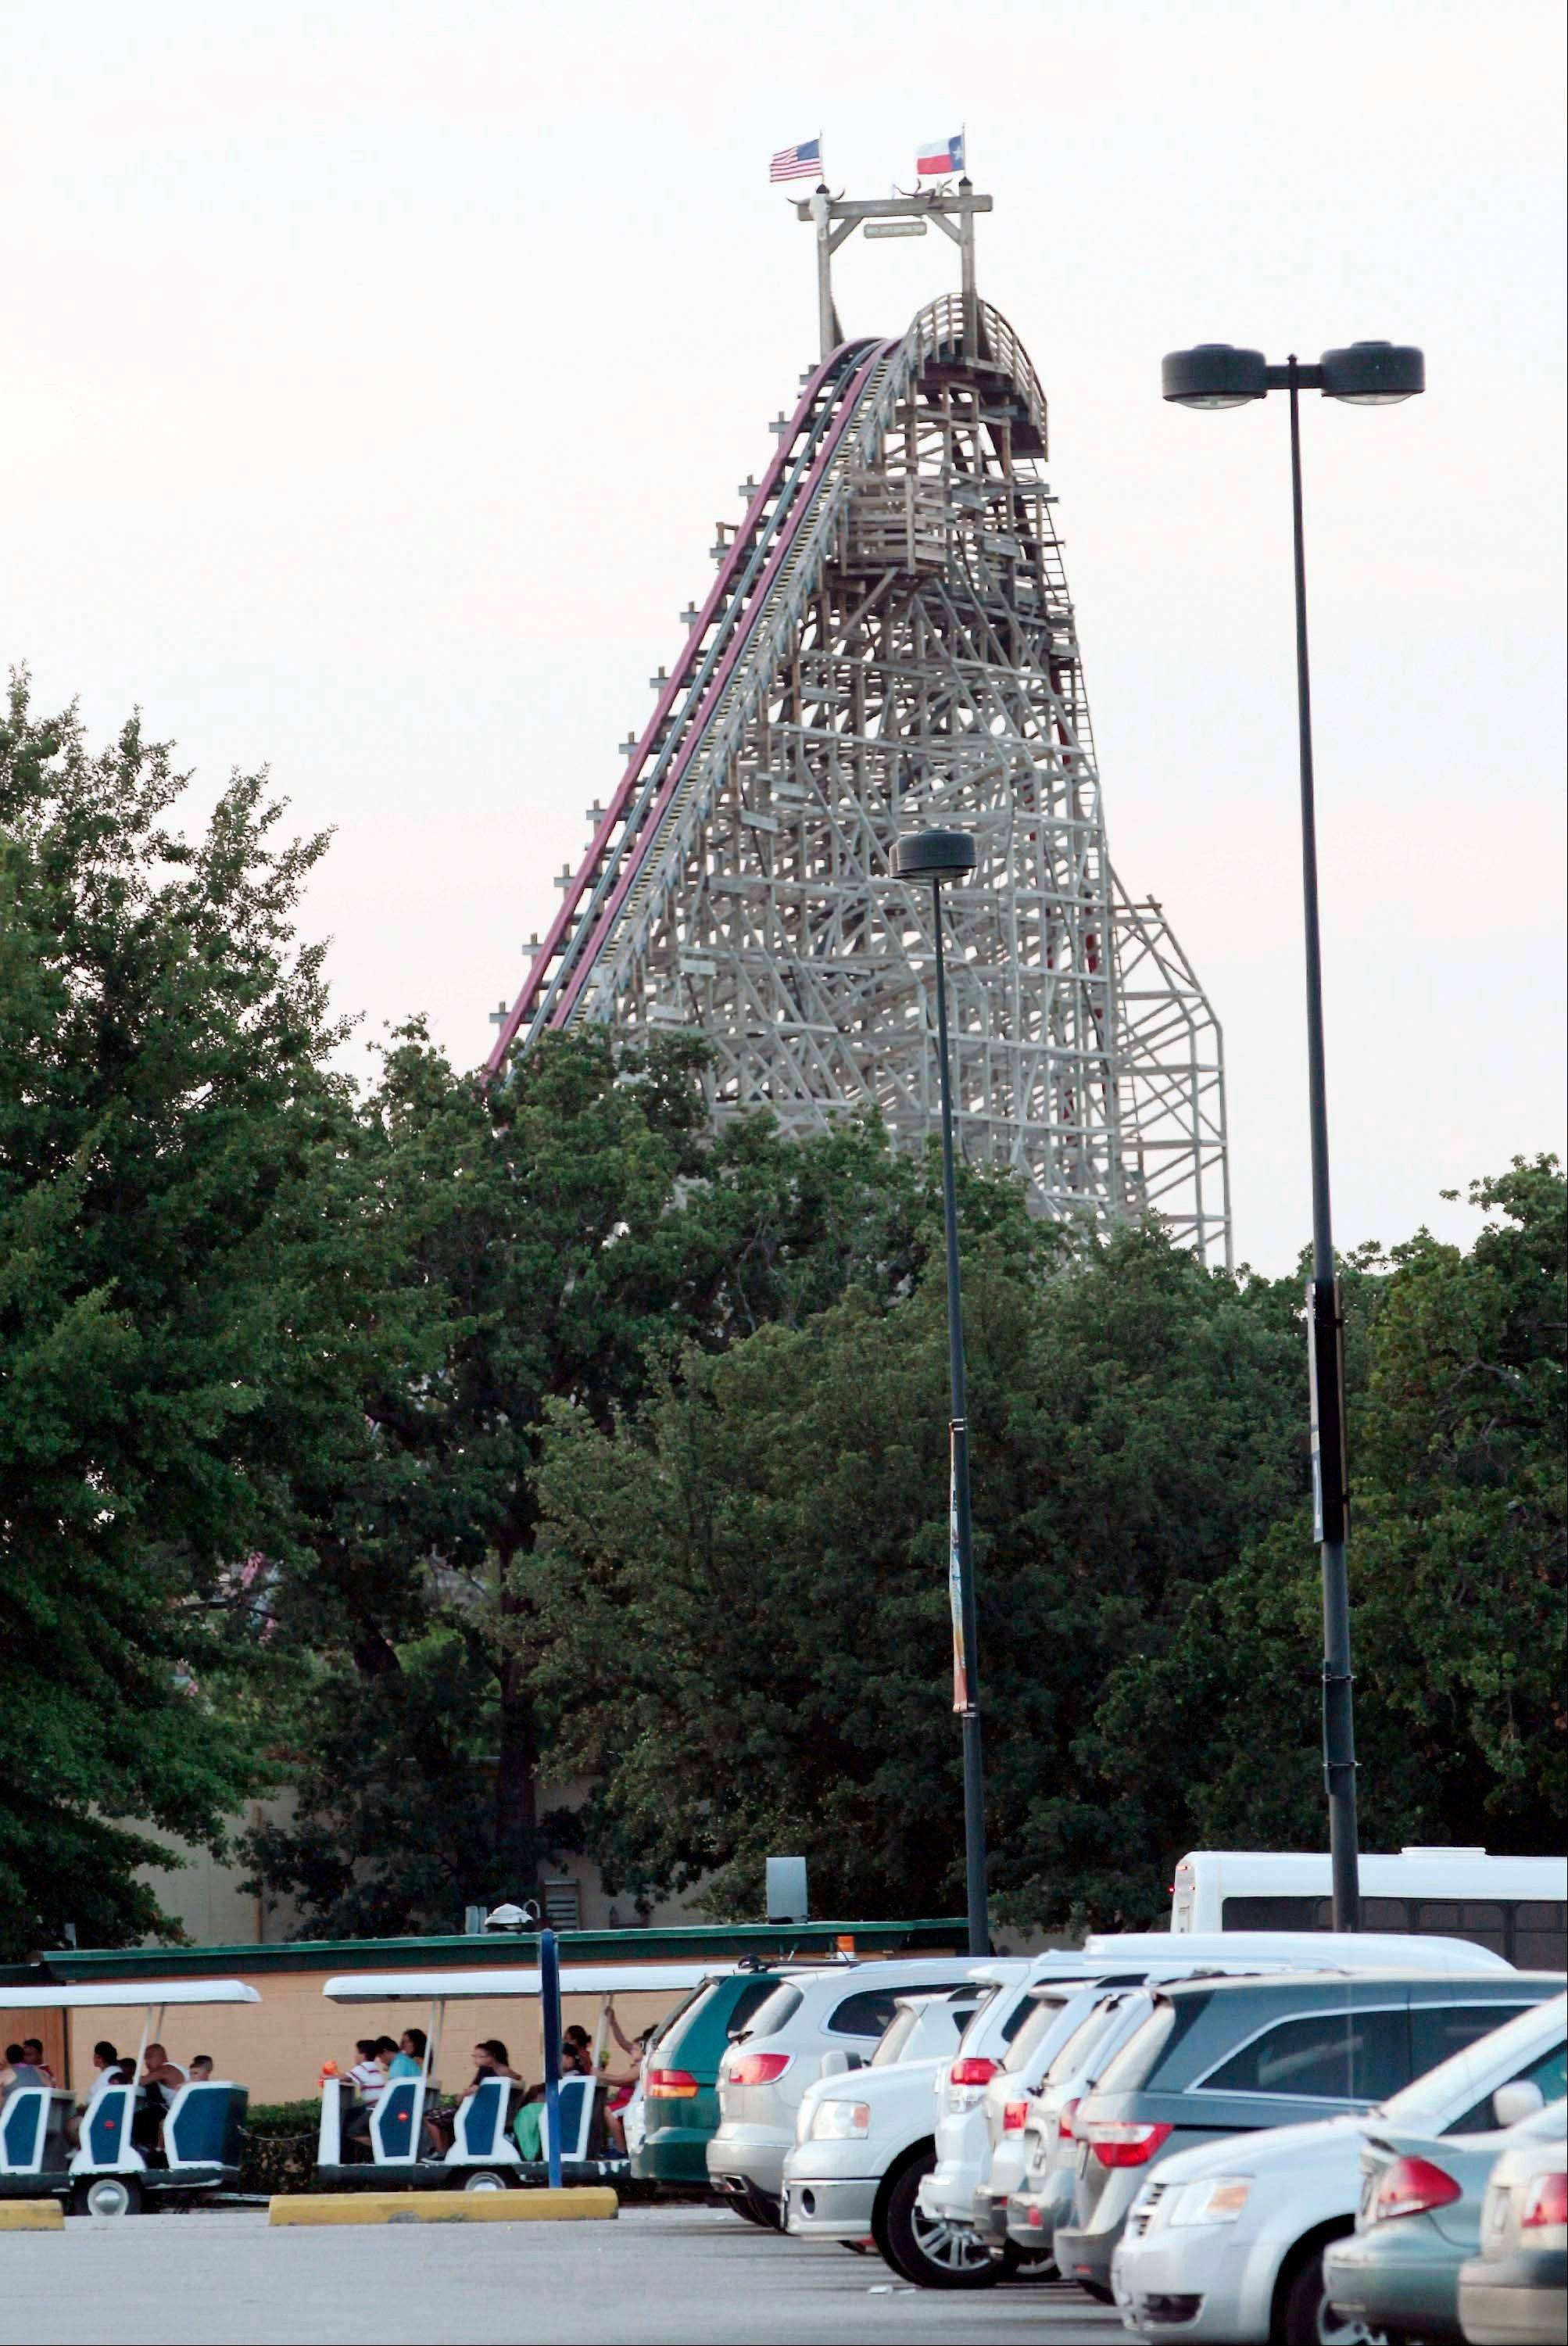 Patrons leave Six Flags Over Texas park Friday. The Texas Giant roller coaster was shut down after an adult woman fell to her death, witnesses say.